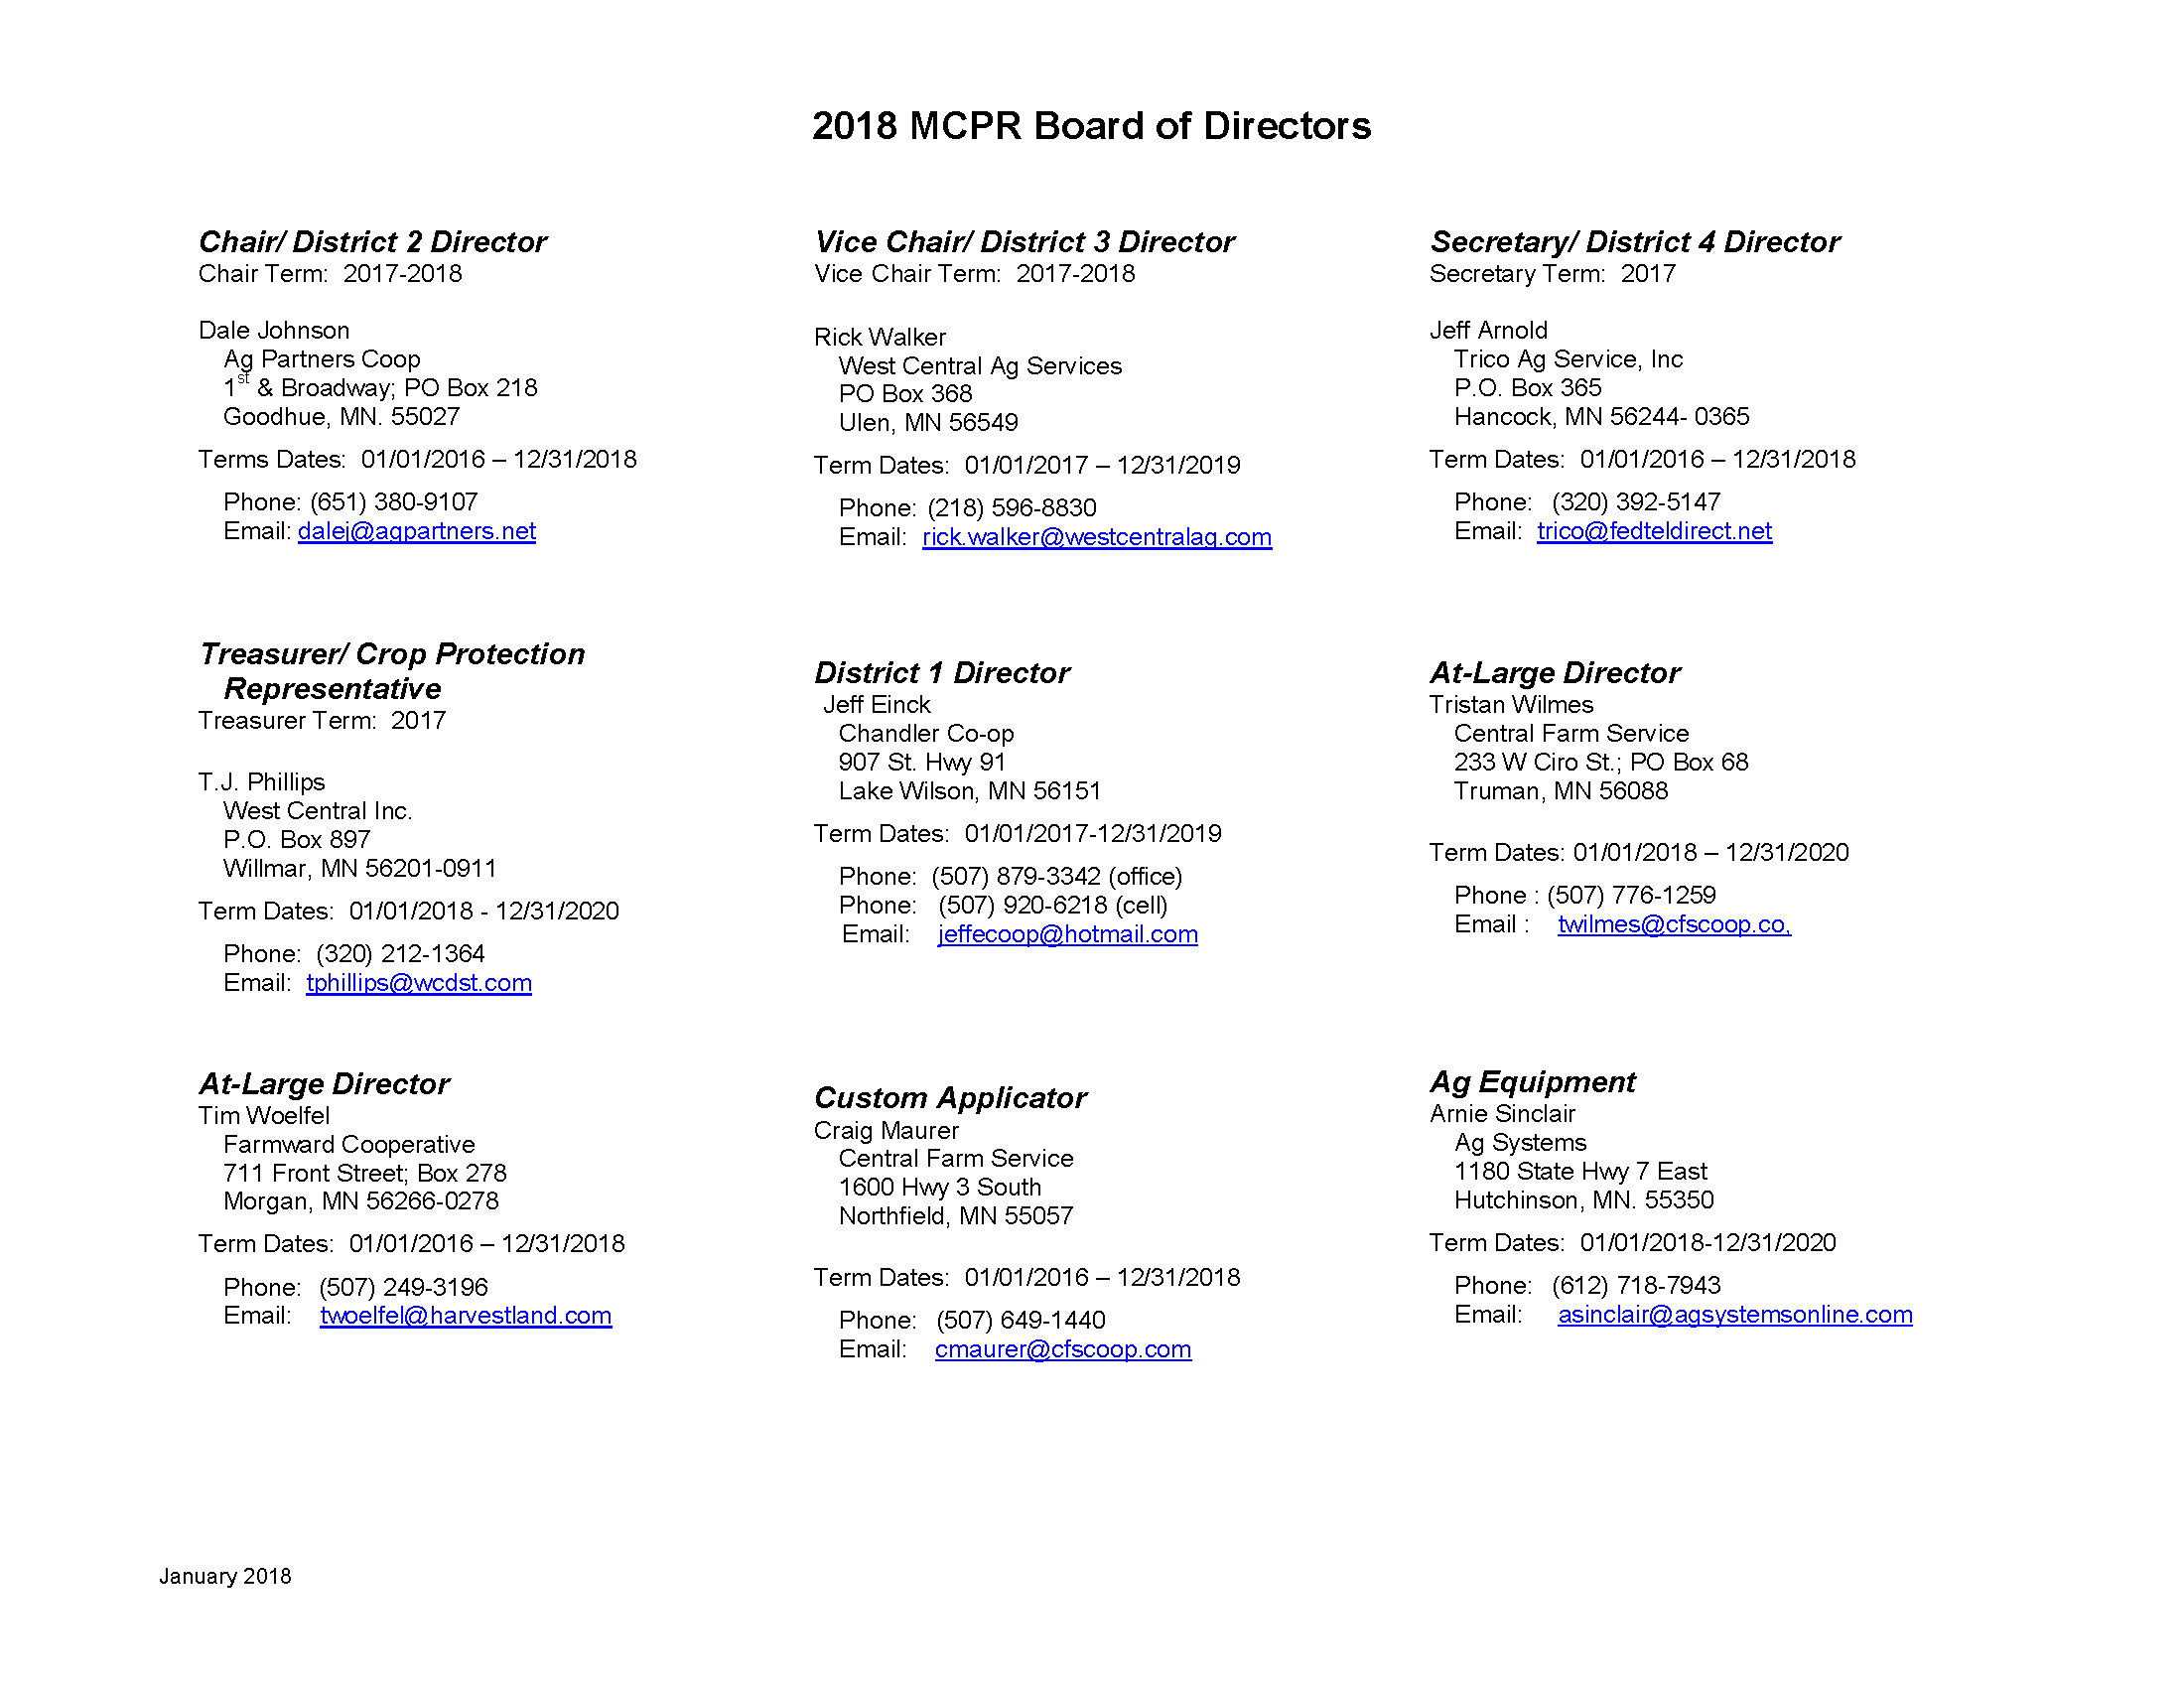 2018 MCPR Board of Directors_August2018_Page_1